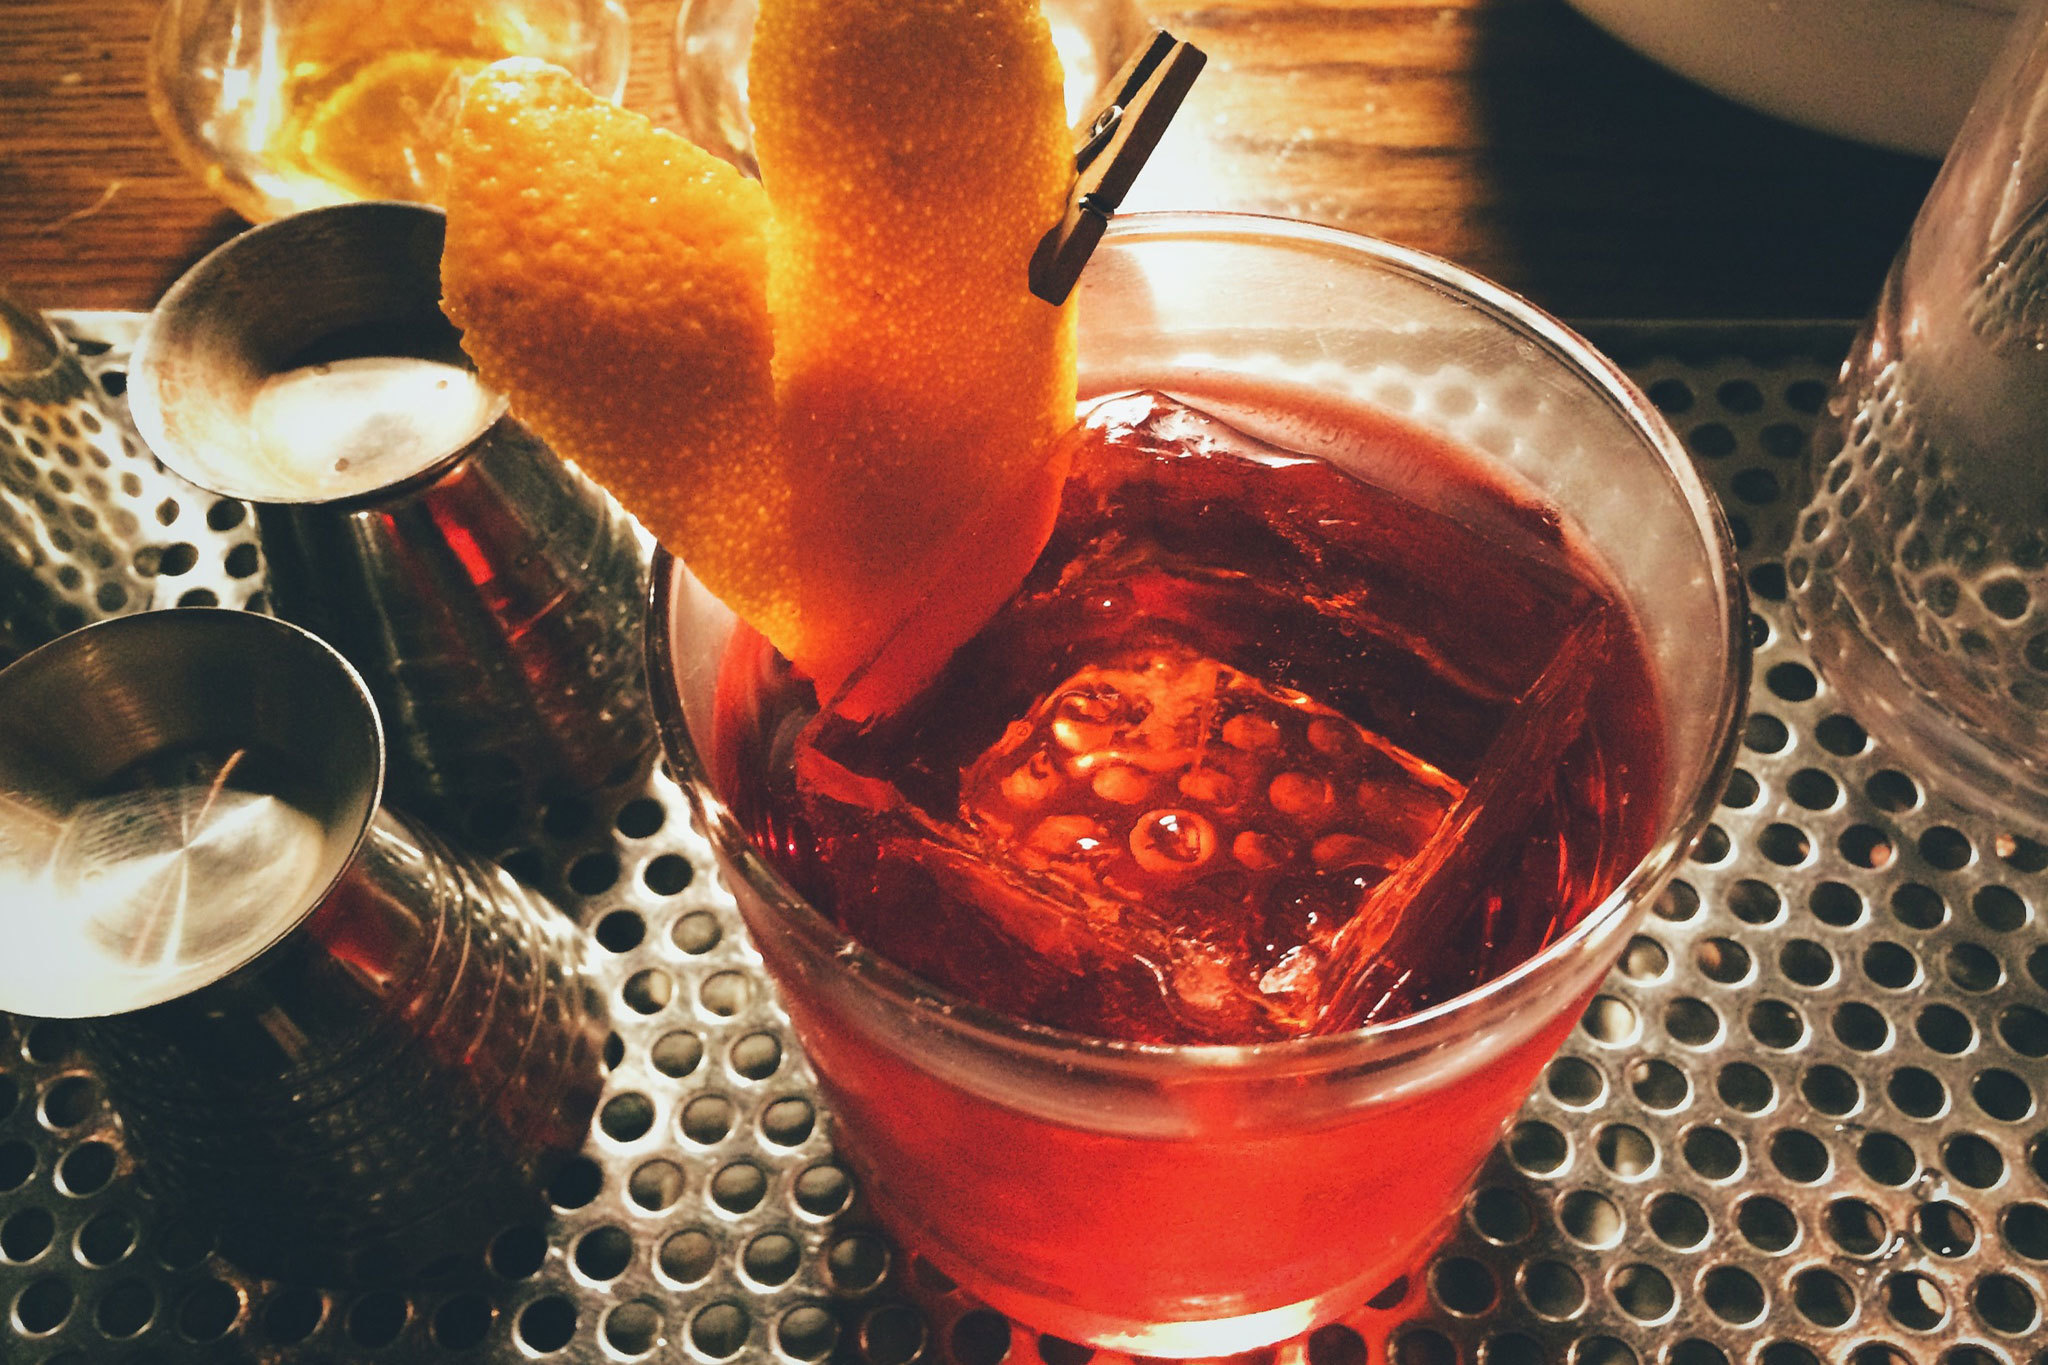 The Corner Door negroni